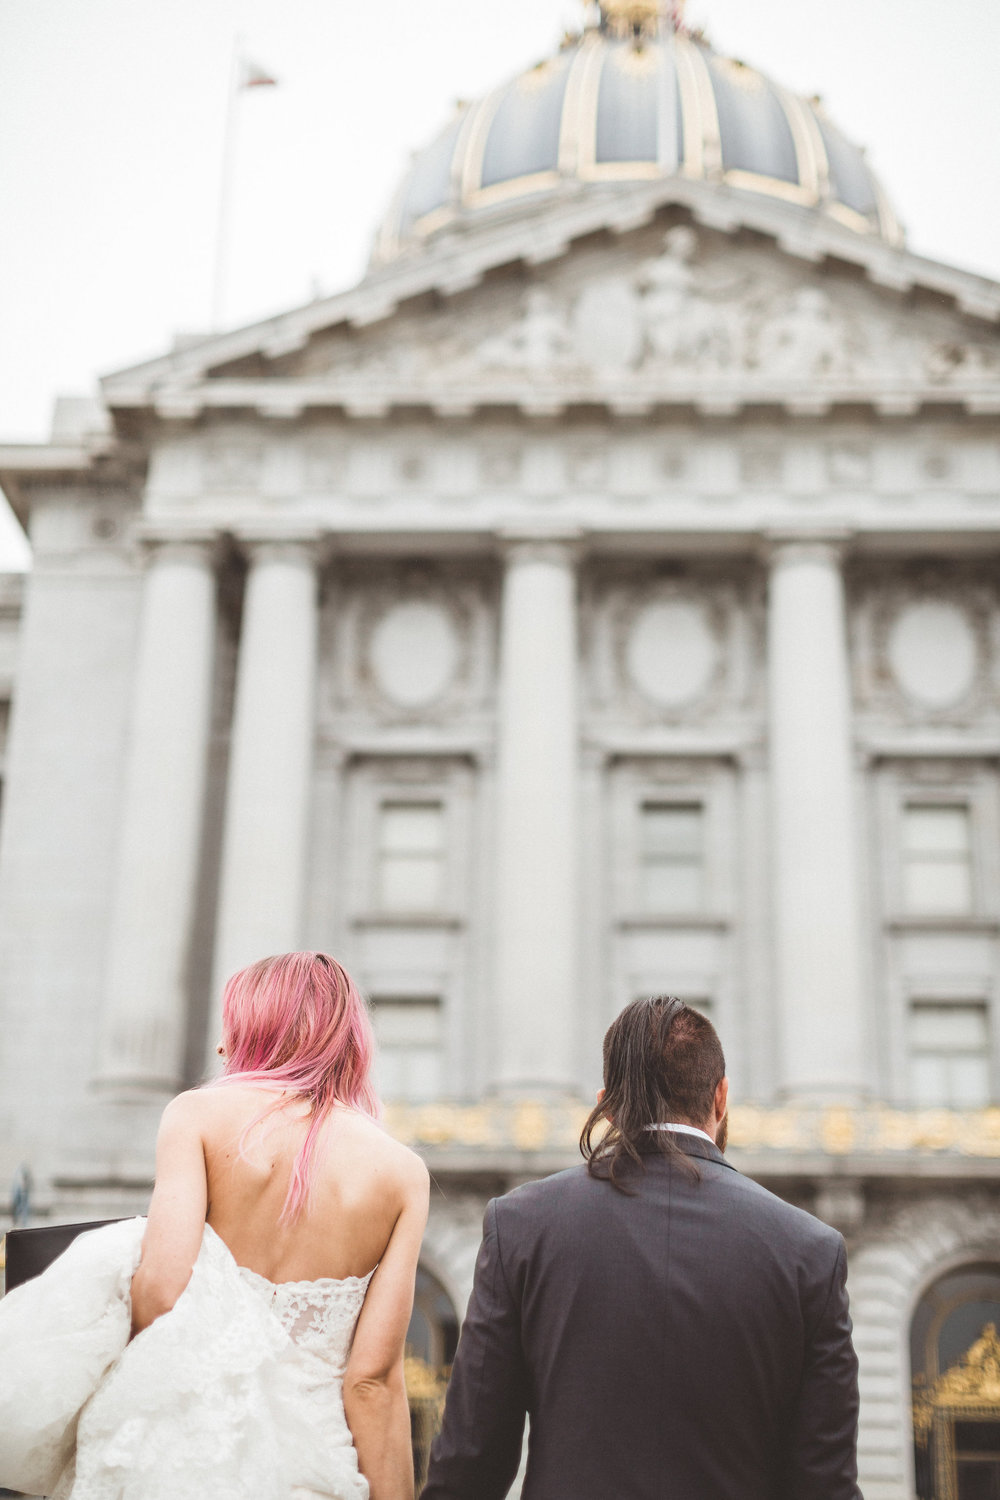 kris-and-andreas-san-francisco-elopement-adventure49.jpg